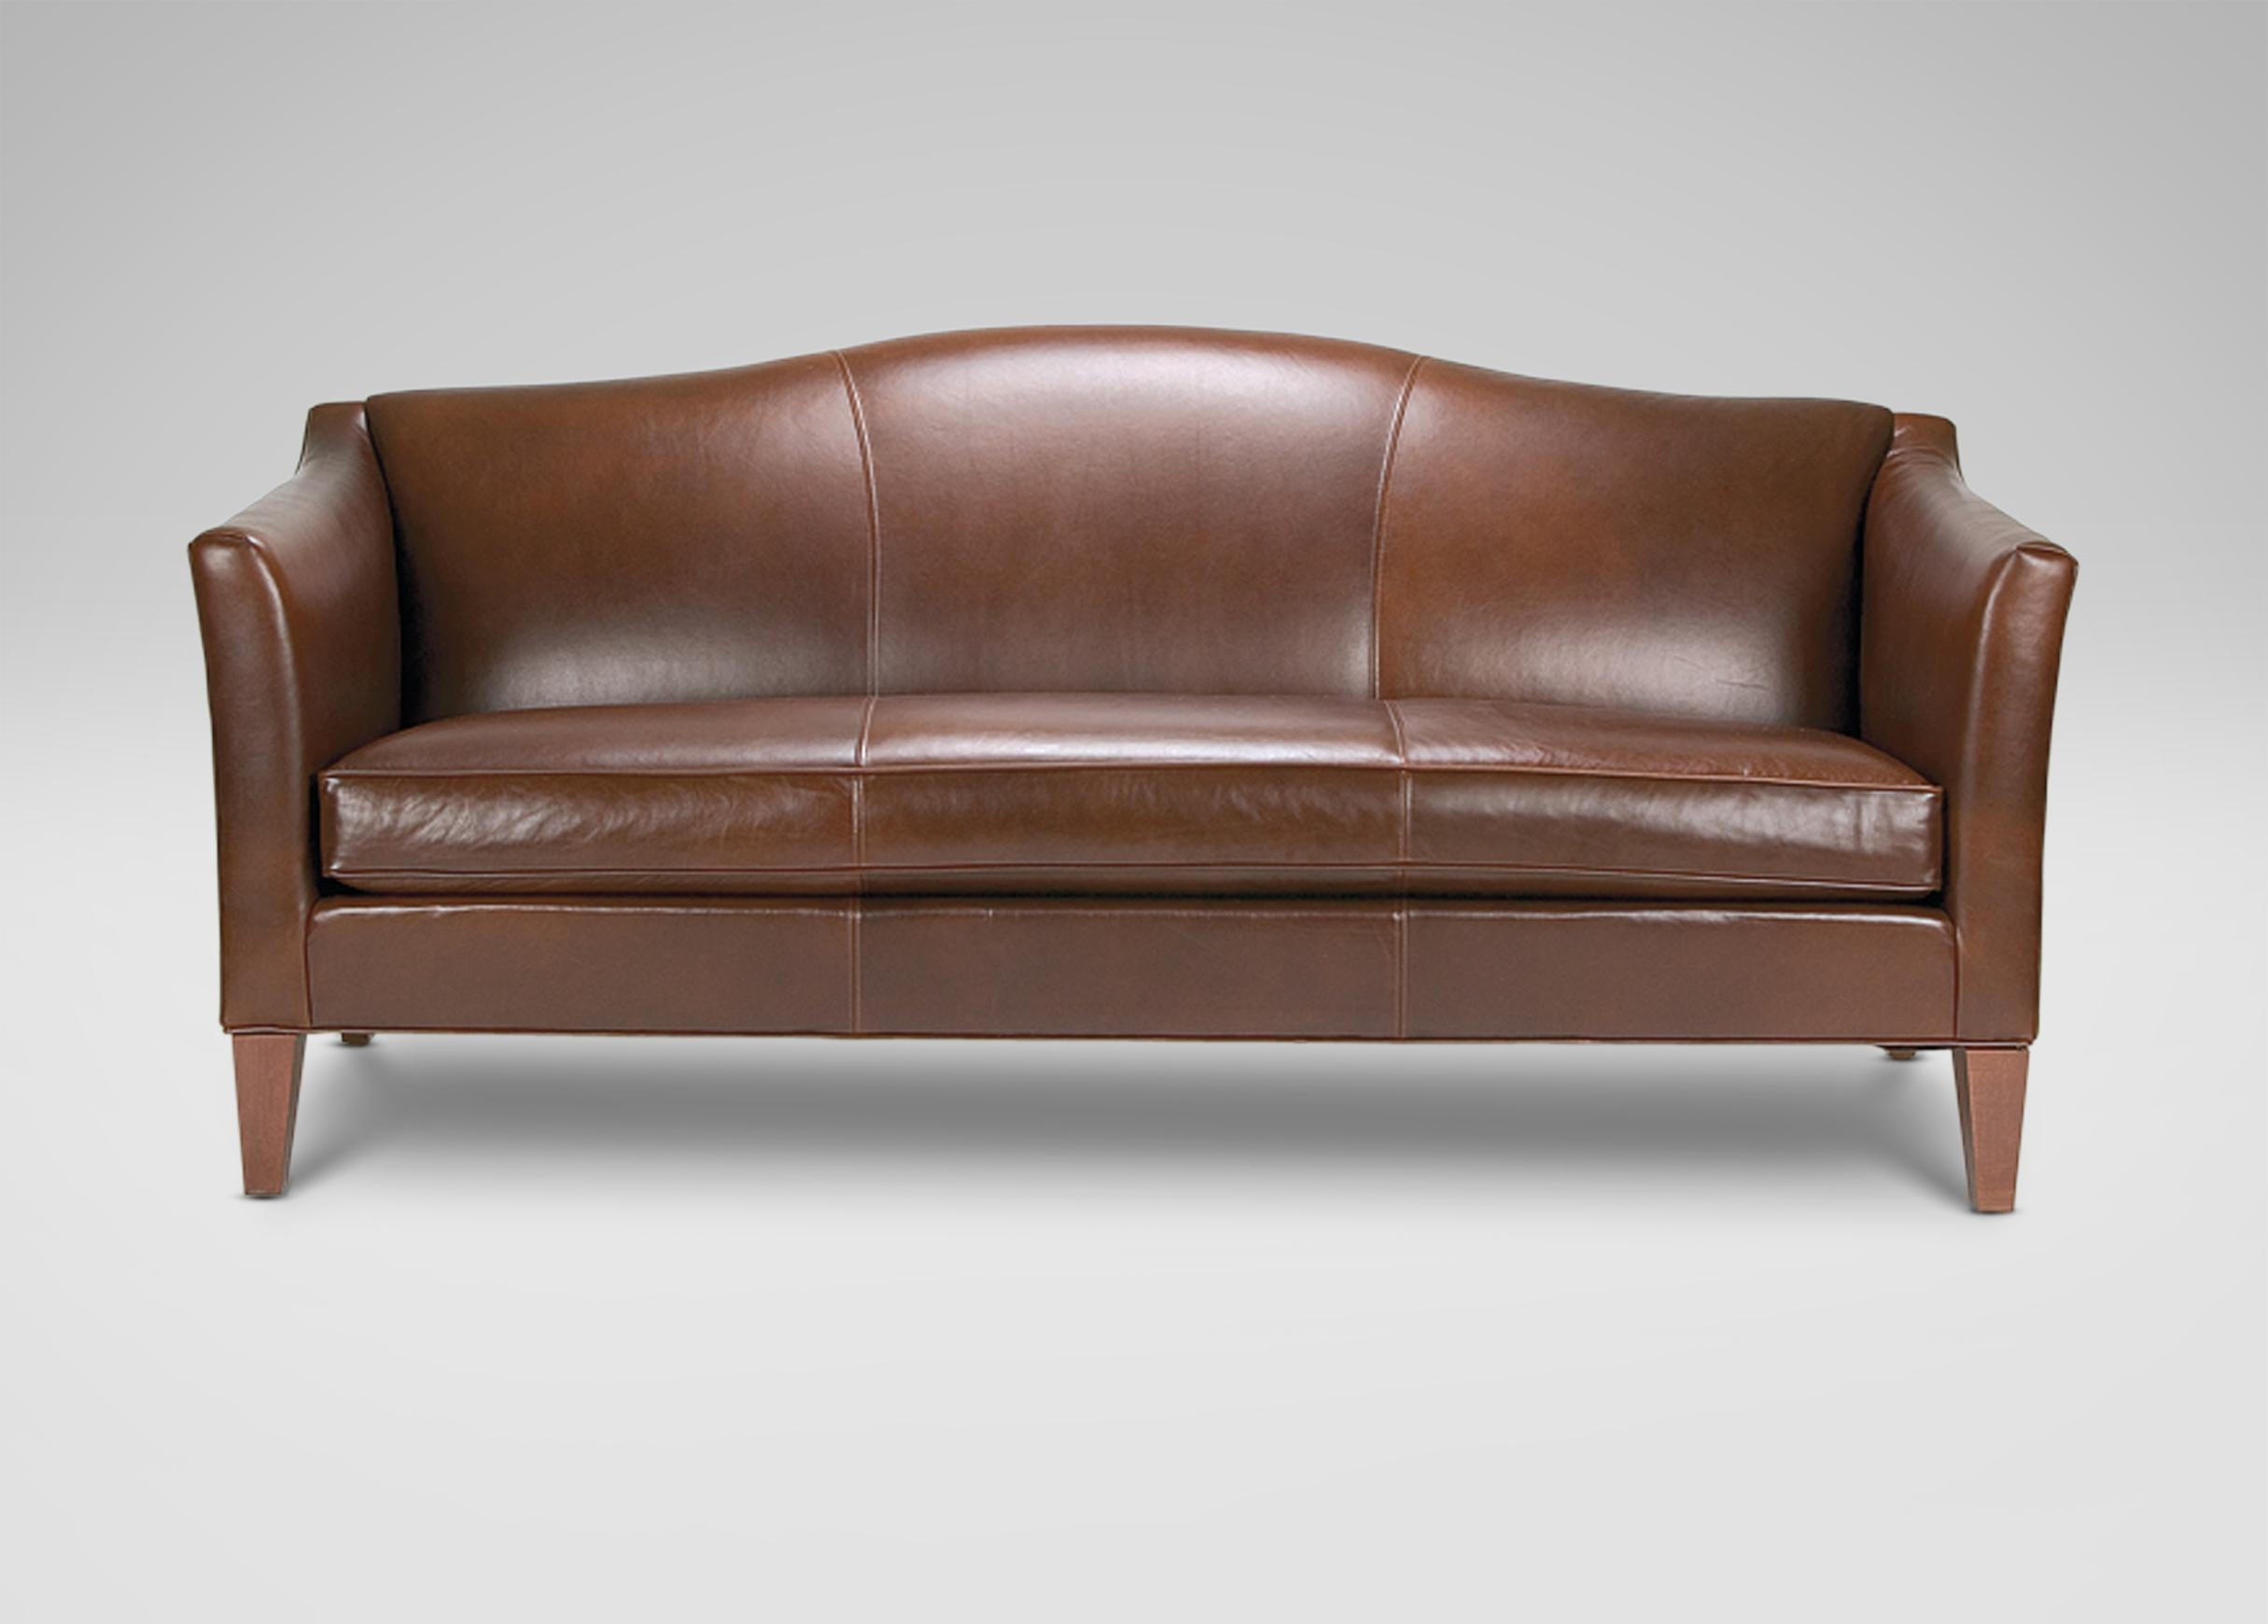 Hartwell Bench Cushion Leather Sofa – Ethan Allen | Sitegenesis With Regard To Bench Cushion Sofas (Image 12 of 20)